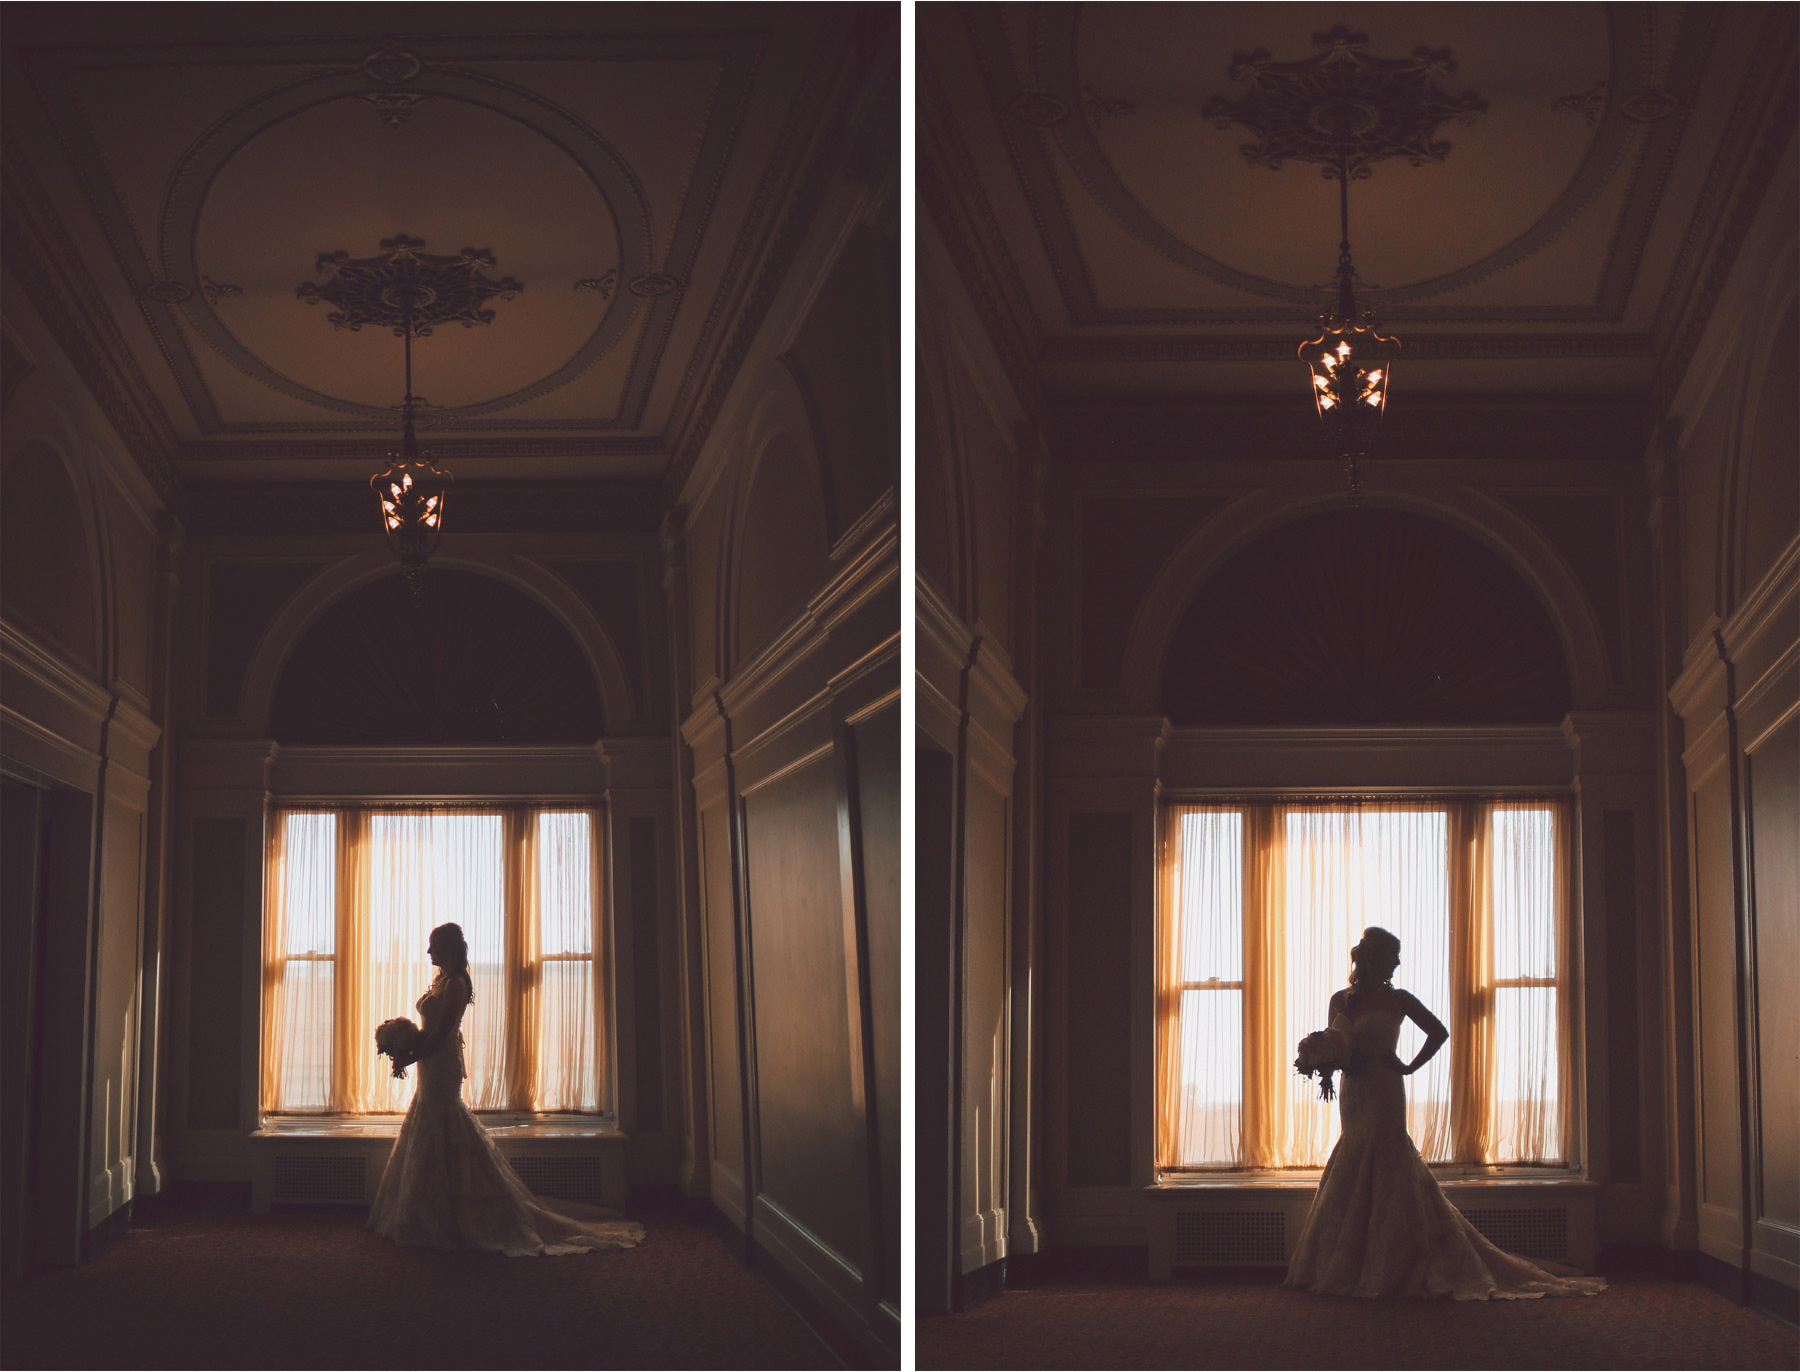 04-Duluth-Minnesota-Wedding-Photographer-by-Andrew-Vick-Photography-Fall-Autumn-Greysolon-Ballroom-Getting-Ready-Bride-Dress-Silhouette-Vintage-Molly-and-Carson.jpg